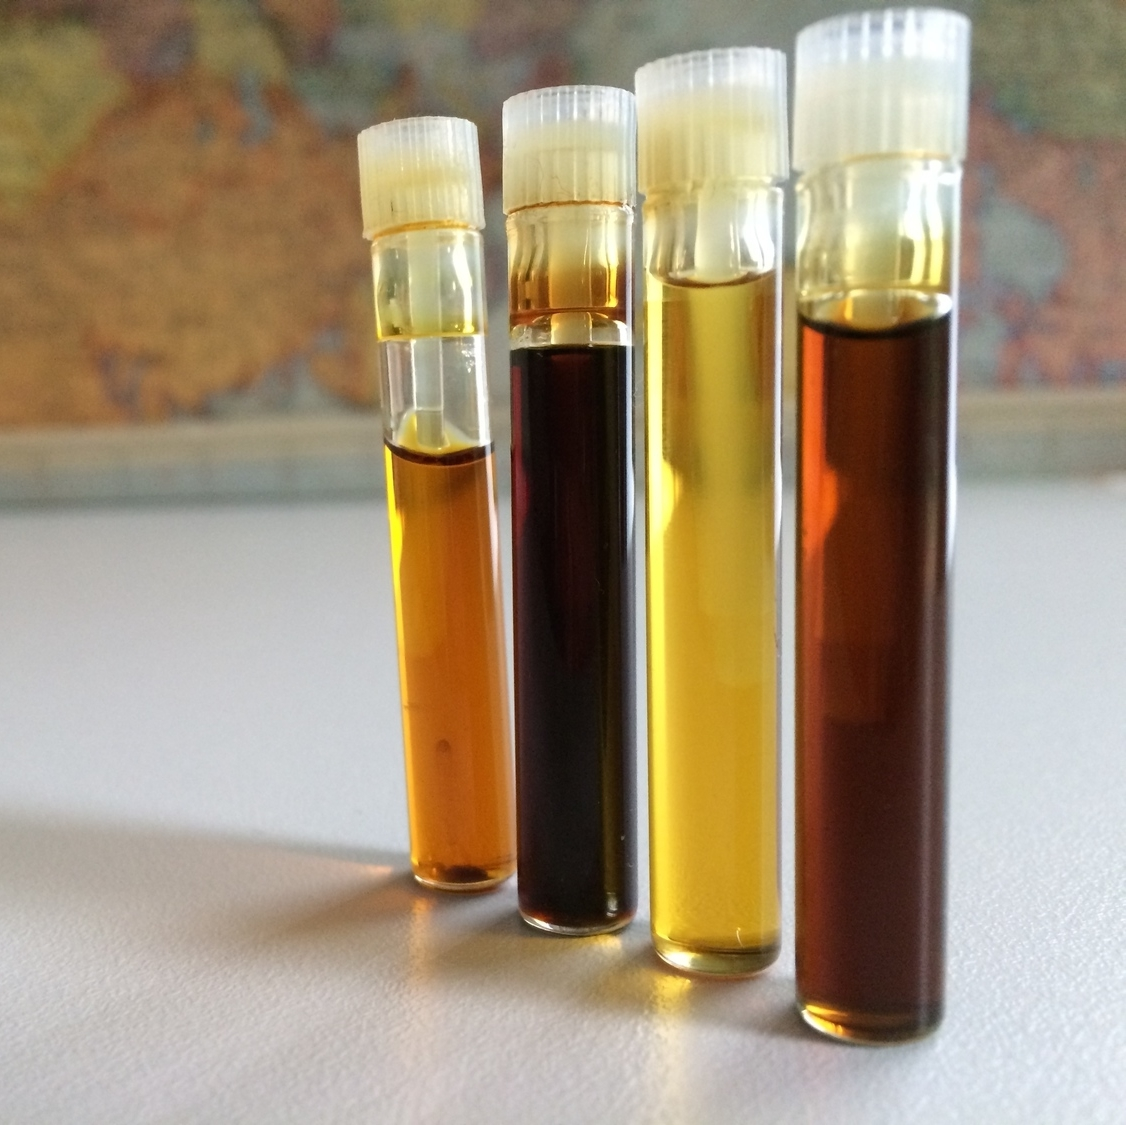 Vetiver oils from Sri Lanka, Indonesia, and Haiti.